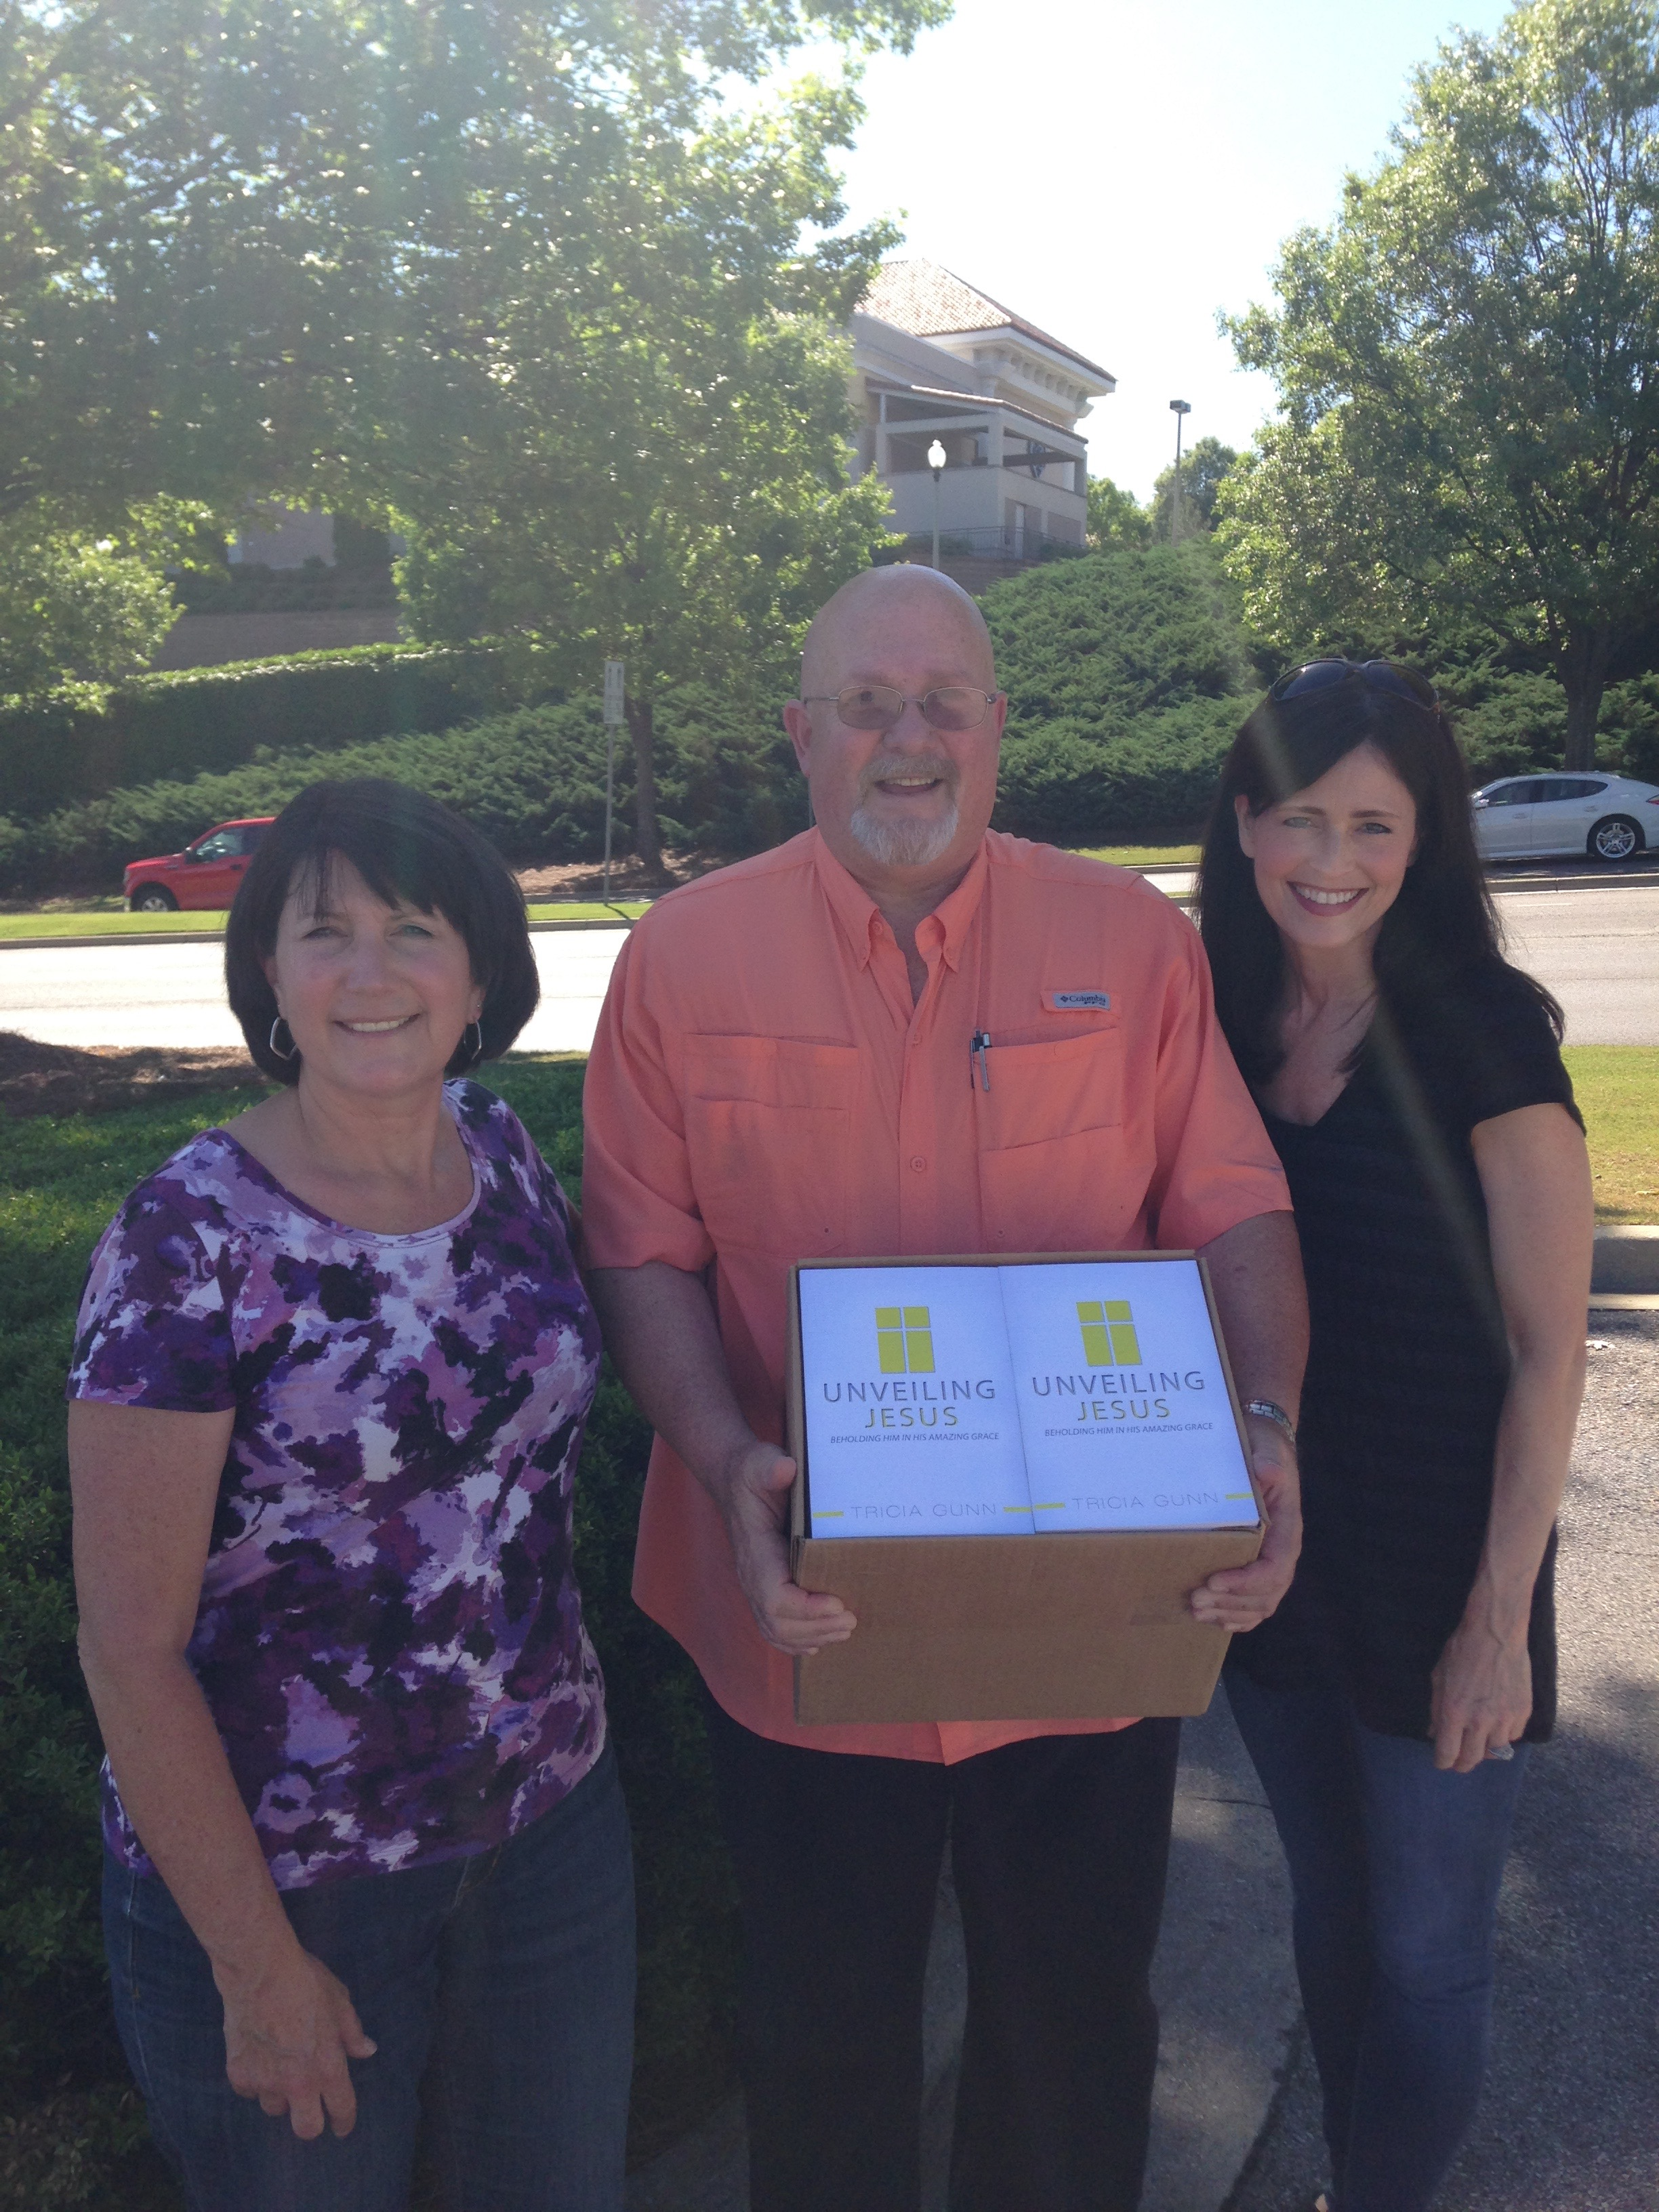 T.R. Harper, Jail Ministry. TR and Michelle taking more books to the inmates who are being healed by God's grace!